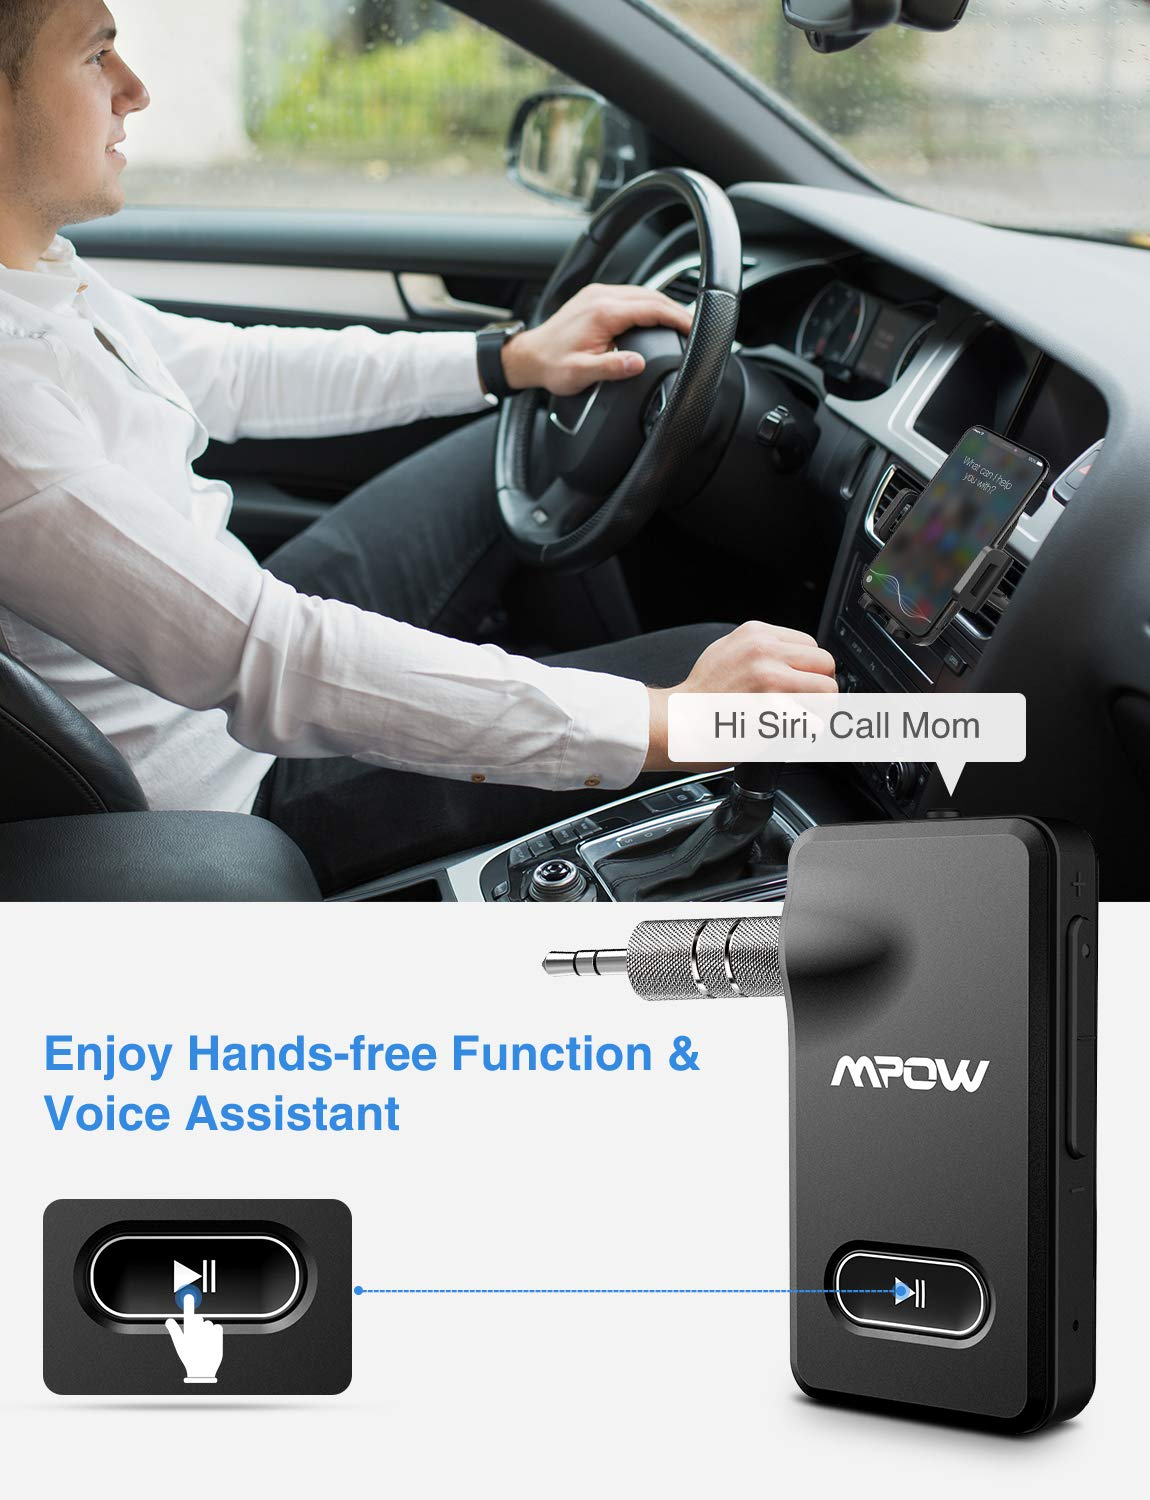 Mpow BH129 Bluetooth Receiver with CSR Chip for Better Music Quality,15 Hours Long Playing Time Bluetooth Adapter, Wireless Audio Car Kits with 1 Second Turn On/Off Button (Dual Link, Voice Assistant) by Mpow (Image #6)